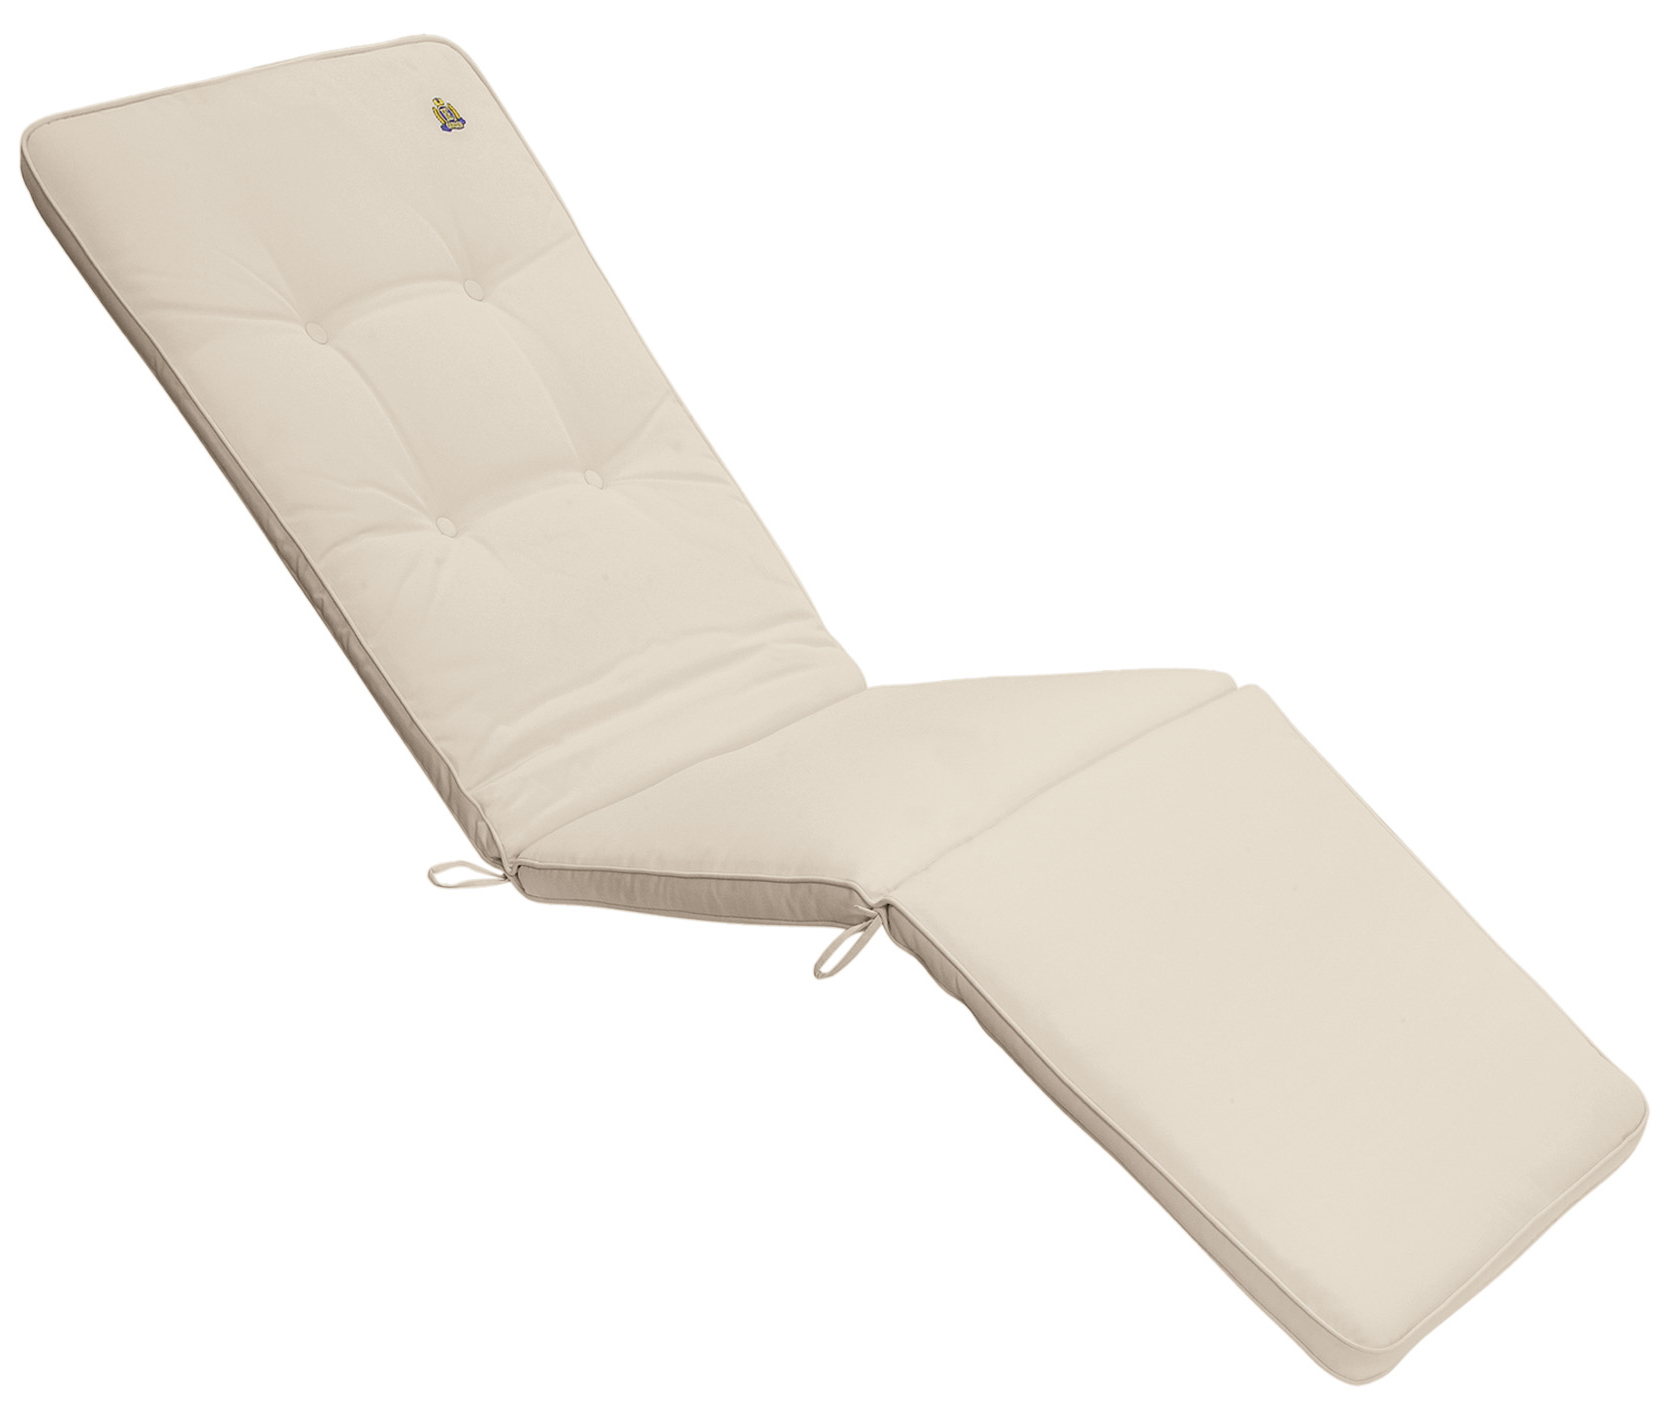 Cuscino da esterno per deckchair con bordino decorativo